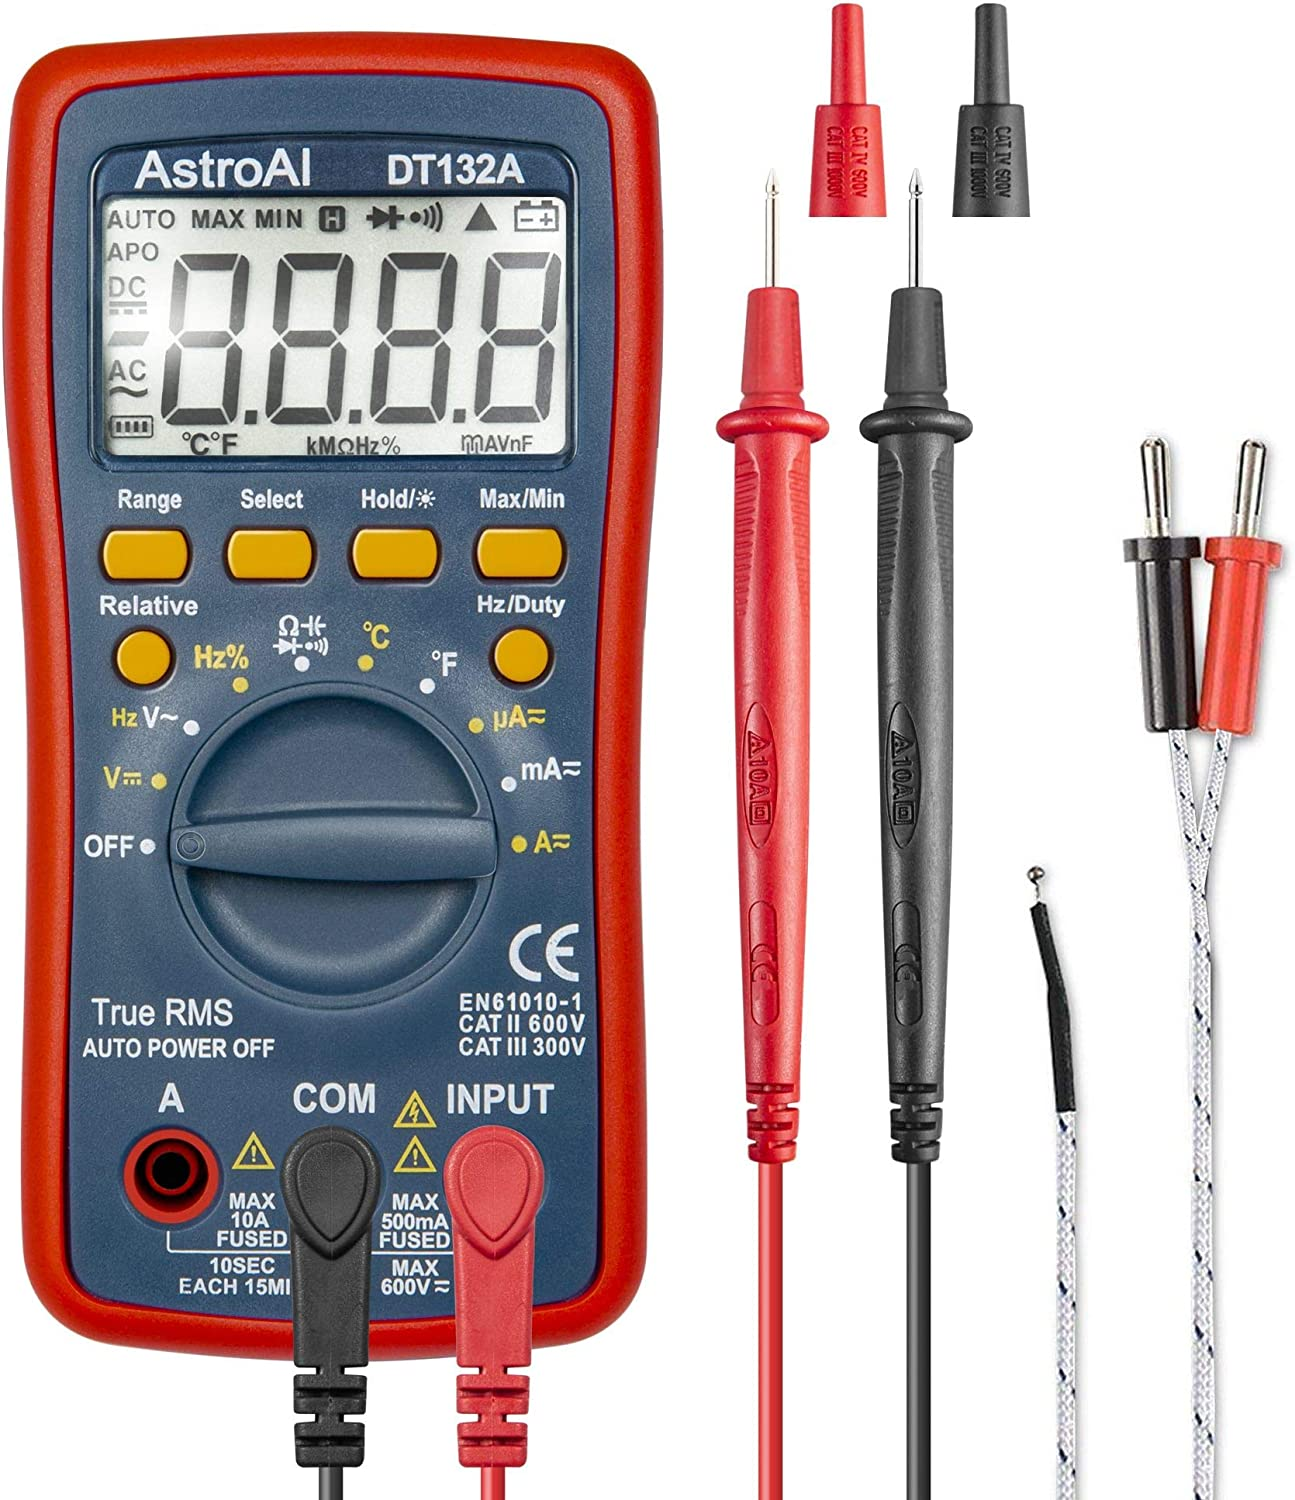 ULTRICS Auto Range Digital Multimeter TRMS 6000 Count Voltmeter Ammeter Multi Tester Measures Voltage Current Resistance Continuity Capacitance Frequency Transistors with Backlit LCD